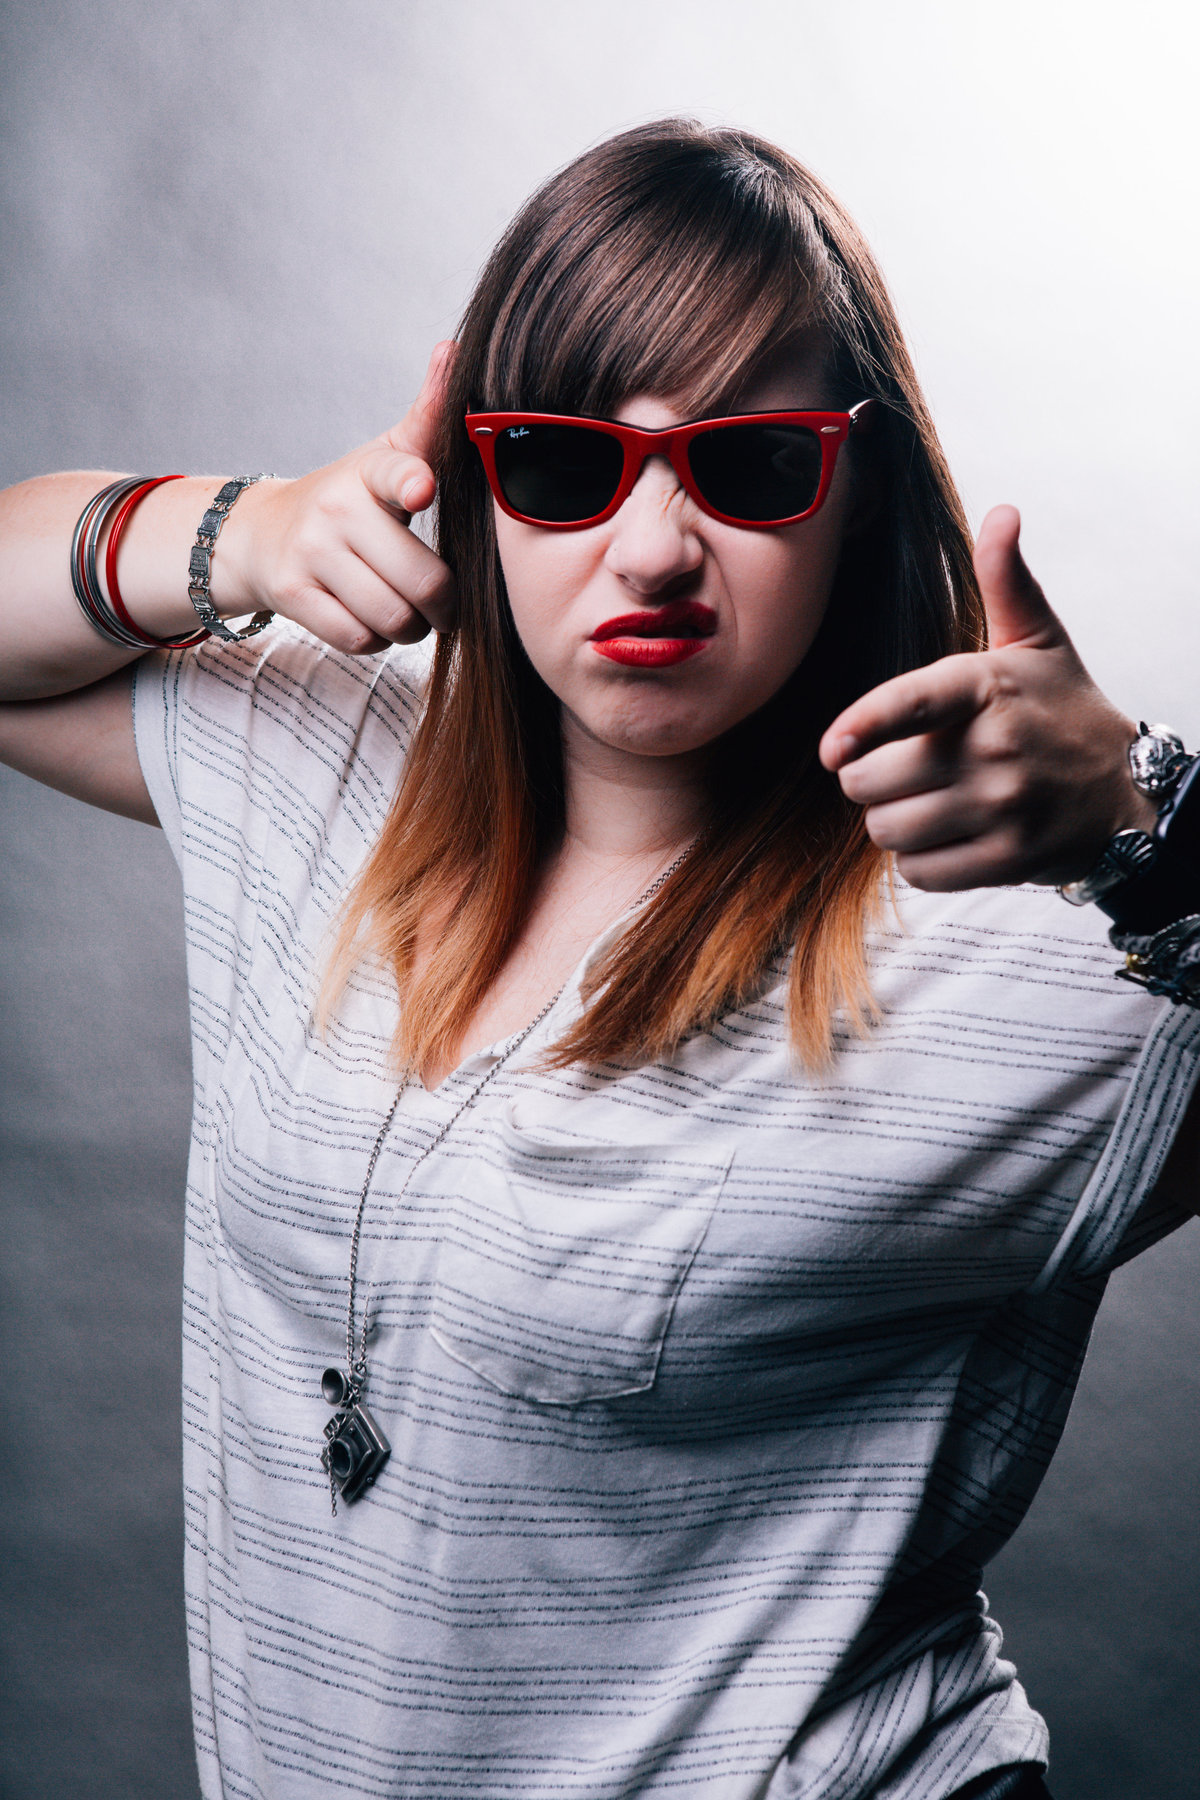 Girl poses and makes finger guns toward the camera